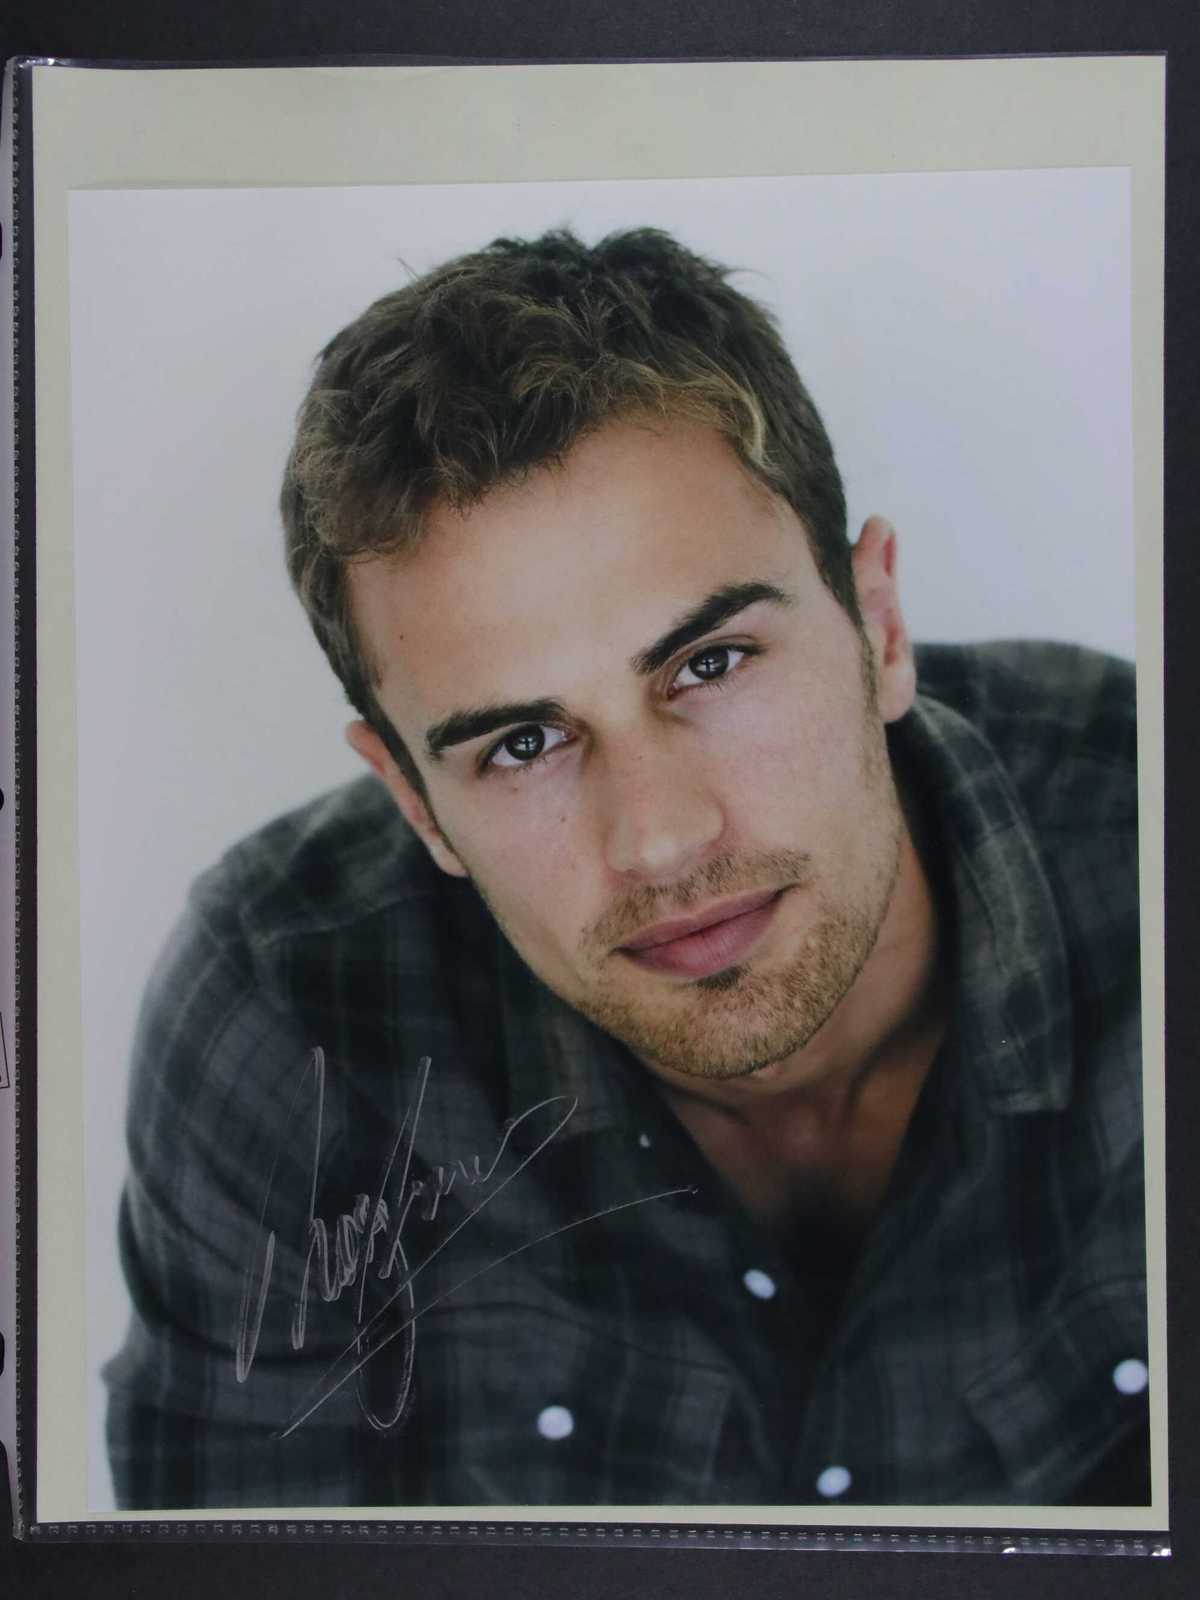 Primary image for Theo James Signed Autographed Glossy 8x10 Photo